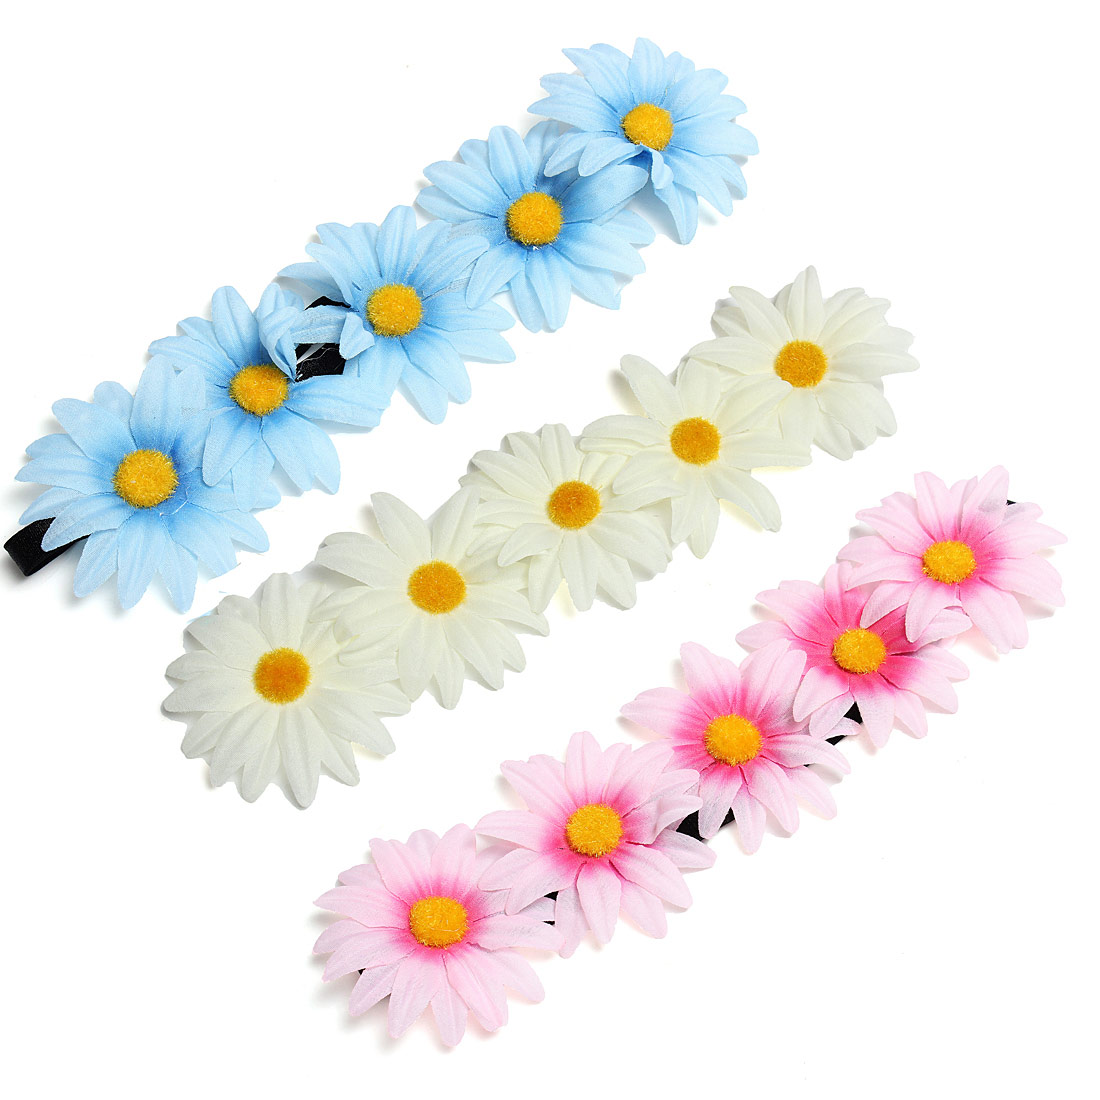 Boho Style Daisy Flower Floral Hair Garland Headbrand Hair Band